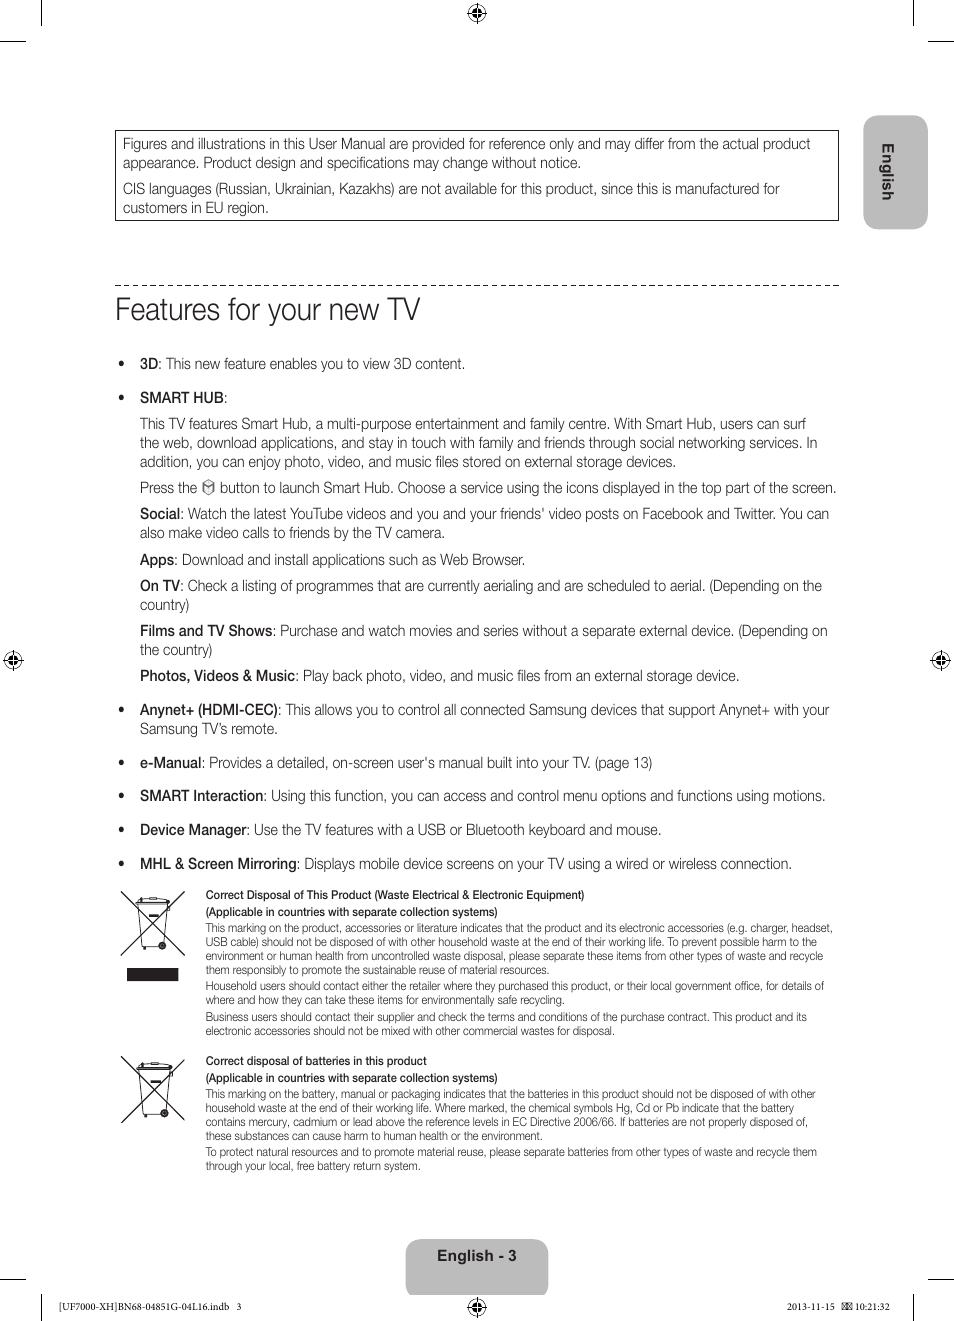 Features For Your New Tv Samsung Ue40f7000st User Manual Page 3